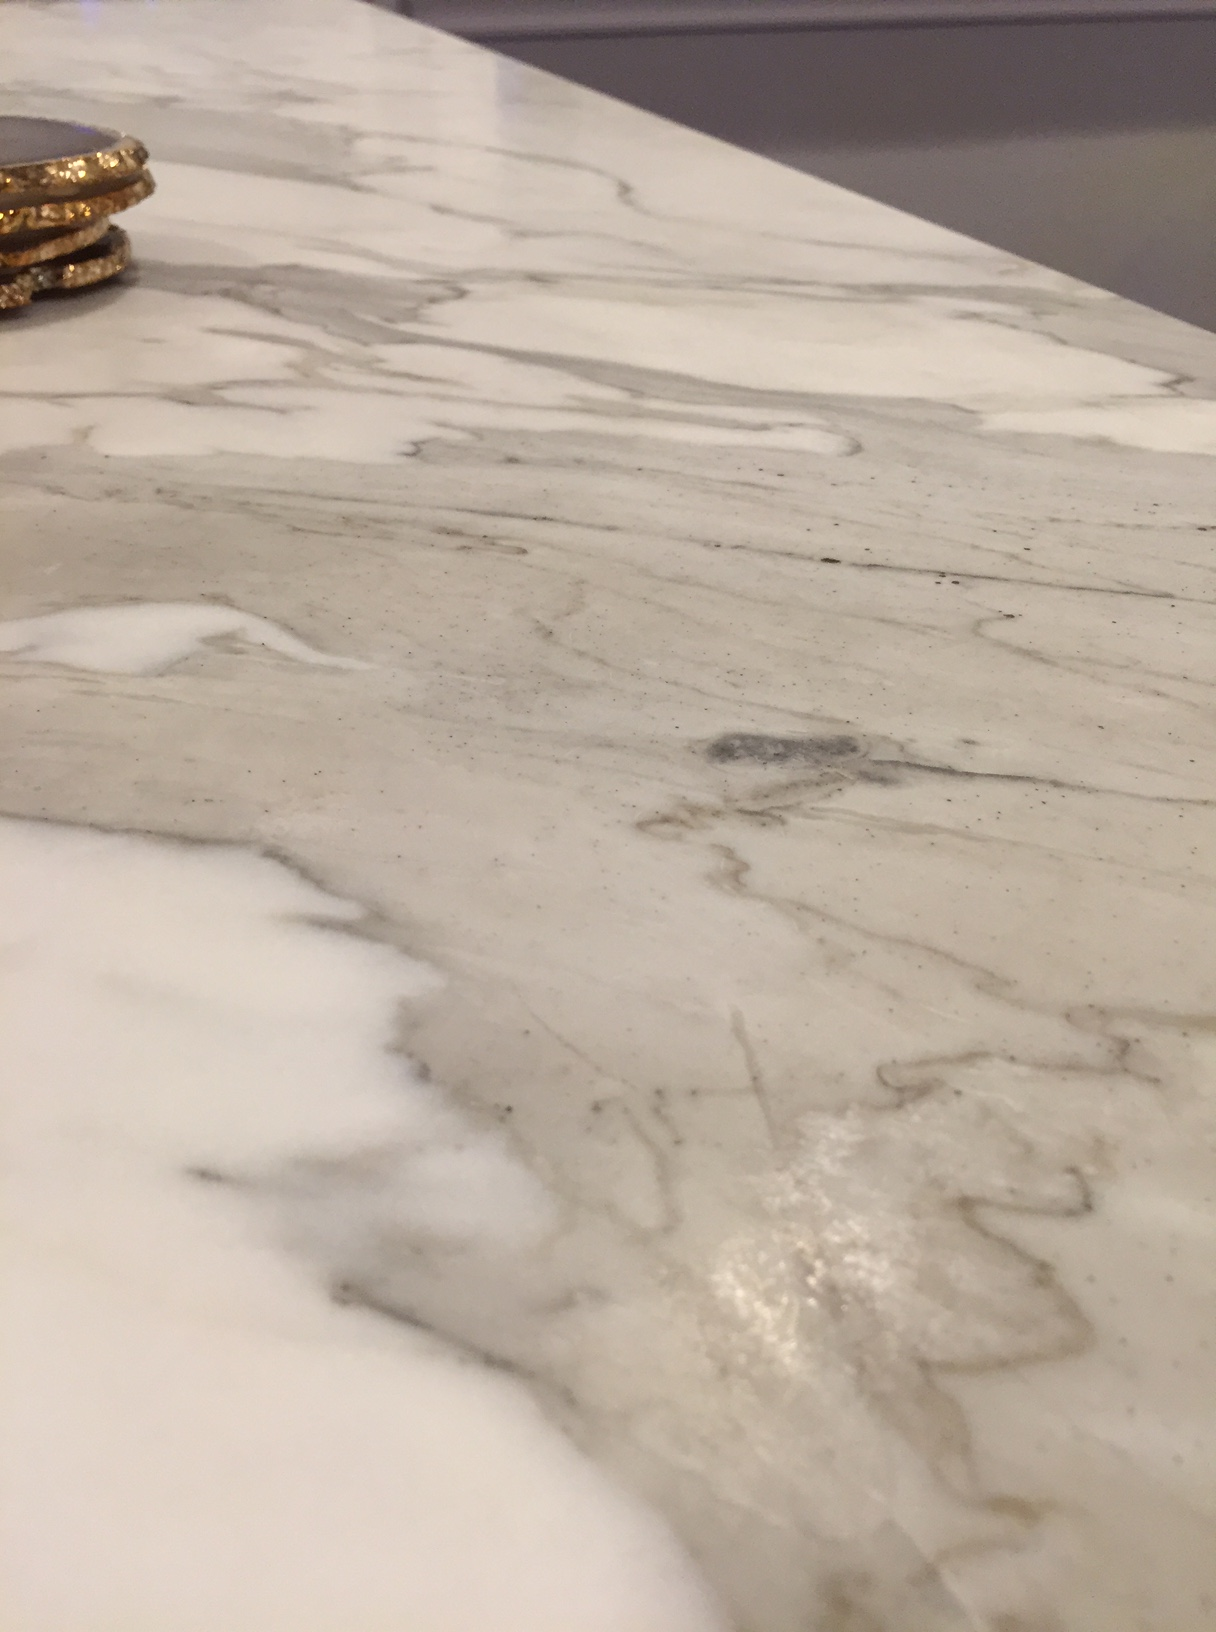 how to get etching out of marble